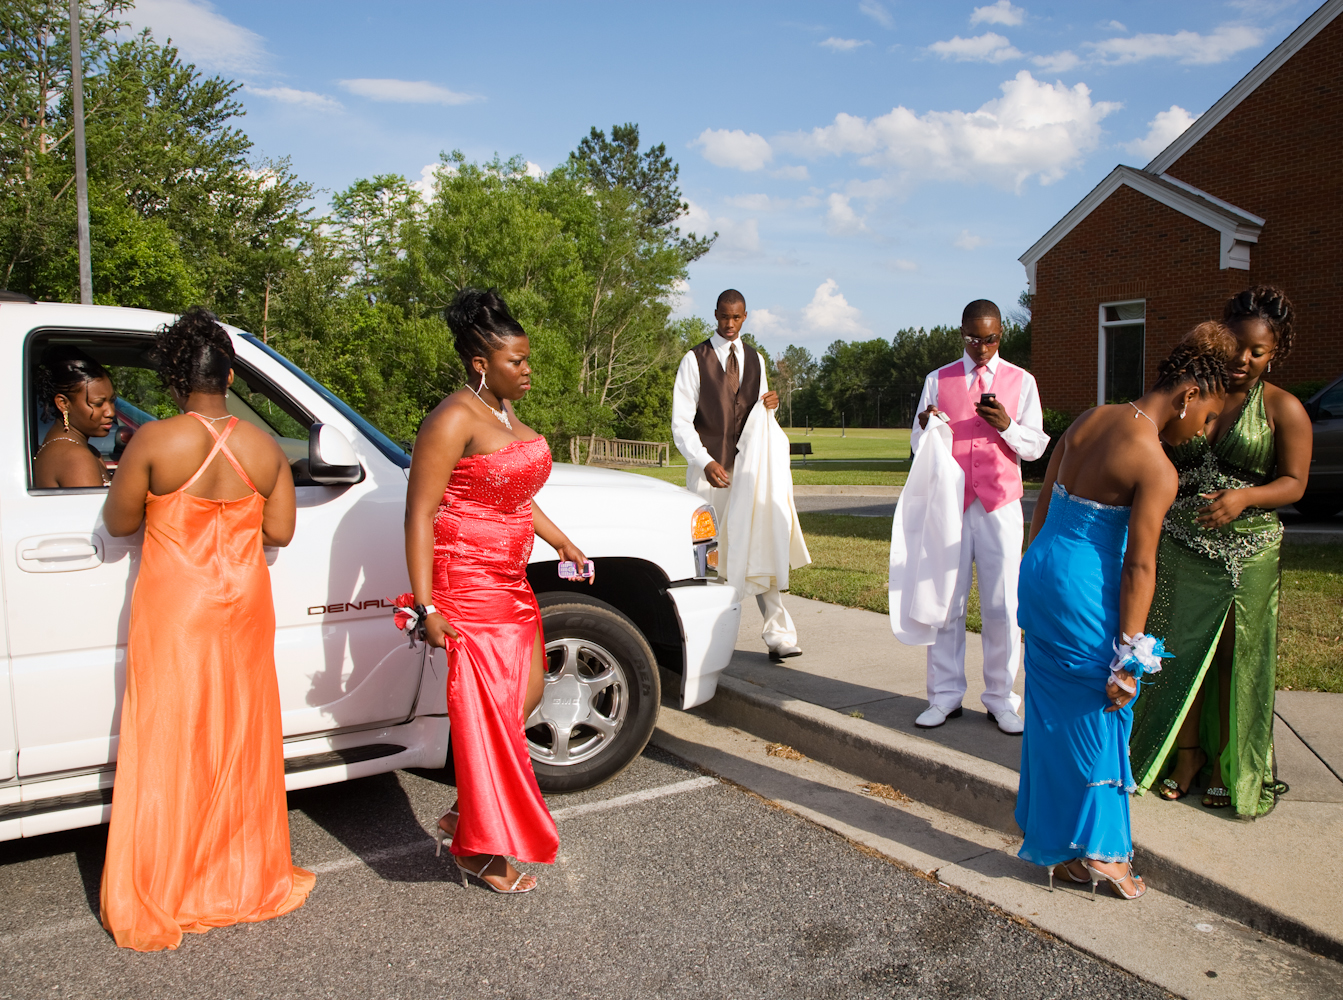 """<strong>On average, in 2014, Southern families spent nearly $200 less on prom-related costs than the Northeast and West Coasts, the <a href=""""http://www.practicalmoneyskills.com/resources/pdfs/Visa_Prom_Survey_2014.pdf"""" title=""""2014 Visa Prom Spending Survey"""" target=""""_blank"""">2014 Visa Prom Spending Survey</a> discovered. The American average household spending on the annual high school rite of passage was $978.  Parents were planning to pay for 56% of prom costs, while their teens covered the remaining 44%.  </strong>                                                                              Title: """"Parking Lot of the First Integrated Prom, Lyons, Georgia 2010,"""" from the series <a href=""""http://www.gillianlaub.com/#/Works%20and%20Projects/Southern%20Rites/1/"""" title=""""Southern Rites"""" target=""""_blank"""">Southern Rites.</a>                                                                              For more than five years, <a href=""""http://www.gillianlaub.com/"""" title=""""Gillian Laub"""" target=""""_blank"""">Gillian Laub</a> has photographed Mt. Vernon, a town in Georgia where—despite the integration of its schools in 1971—the high school's fall homecoming and spring prom remain racially segregated. In 2009, <a href=""""http://www.nytimes.com/interactive/2009/05/24/magazine/dividedproms-audioss/"""" title=""""New York Times Magazine – A Prom Divided"""" target=""""_blank"""">The New York Times Magazine published some of these images in a photo essay and multimedia piece, """"A Prom Divided.""""</a> It caused national outrage. Now, there is only one homecoming queen and one prom."""